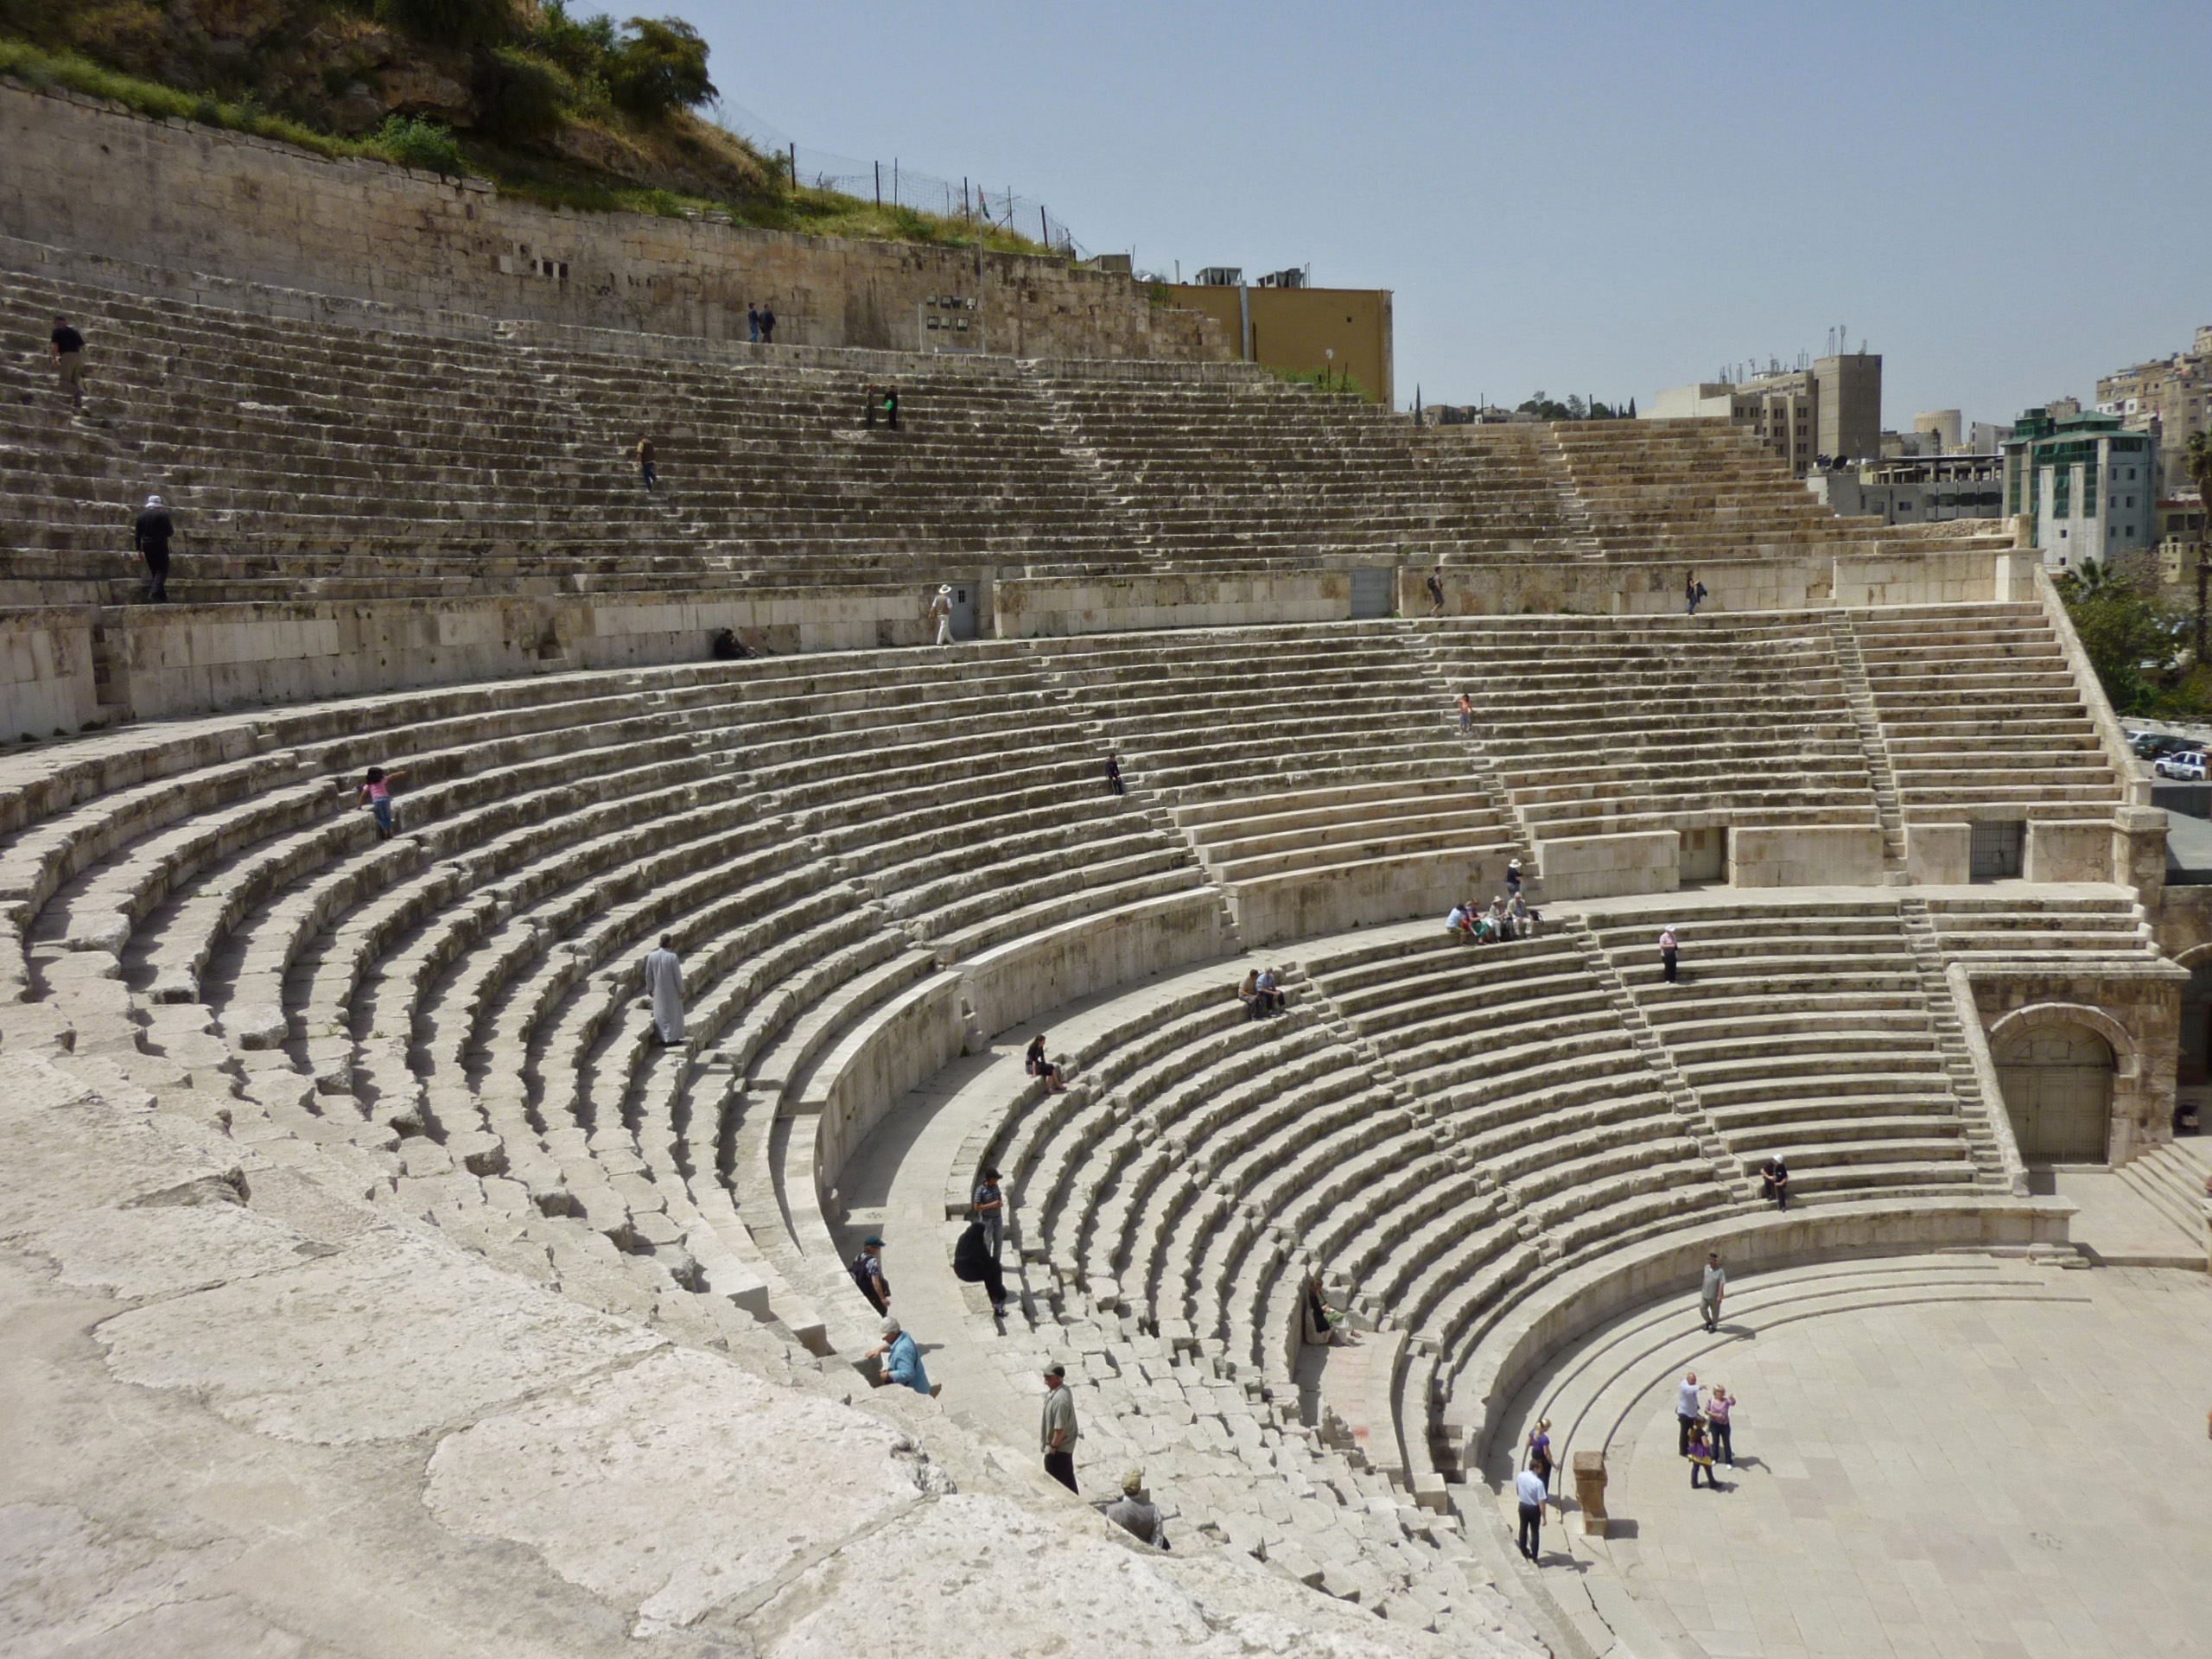 File:Roman theater of Amman 02.jpg - Wikimedia Commons